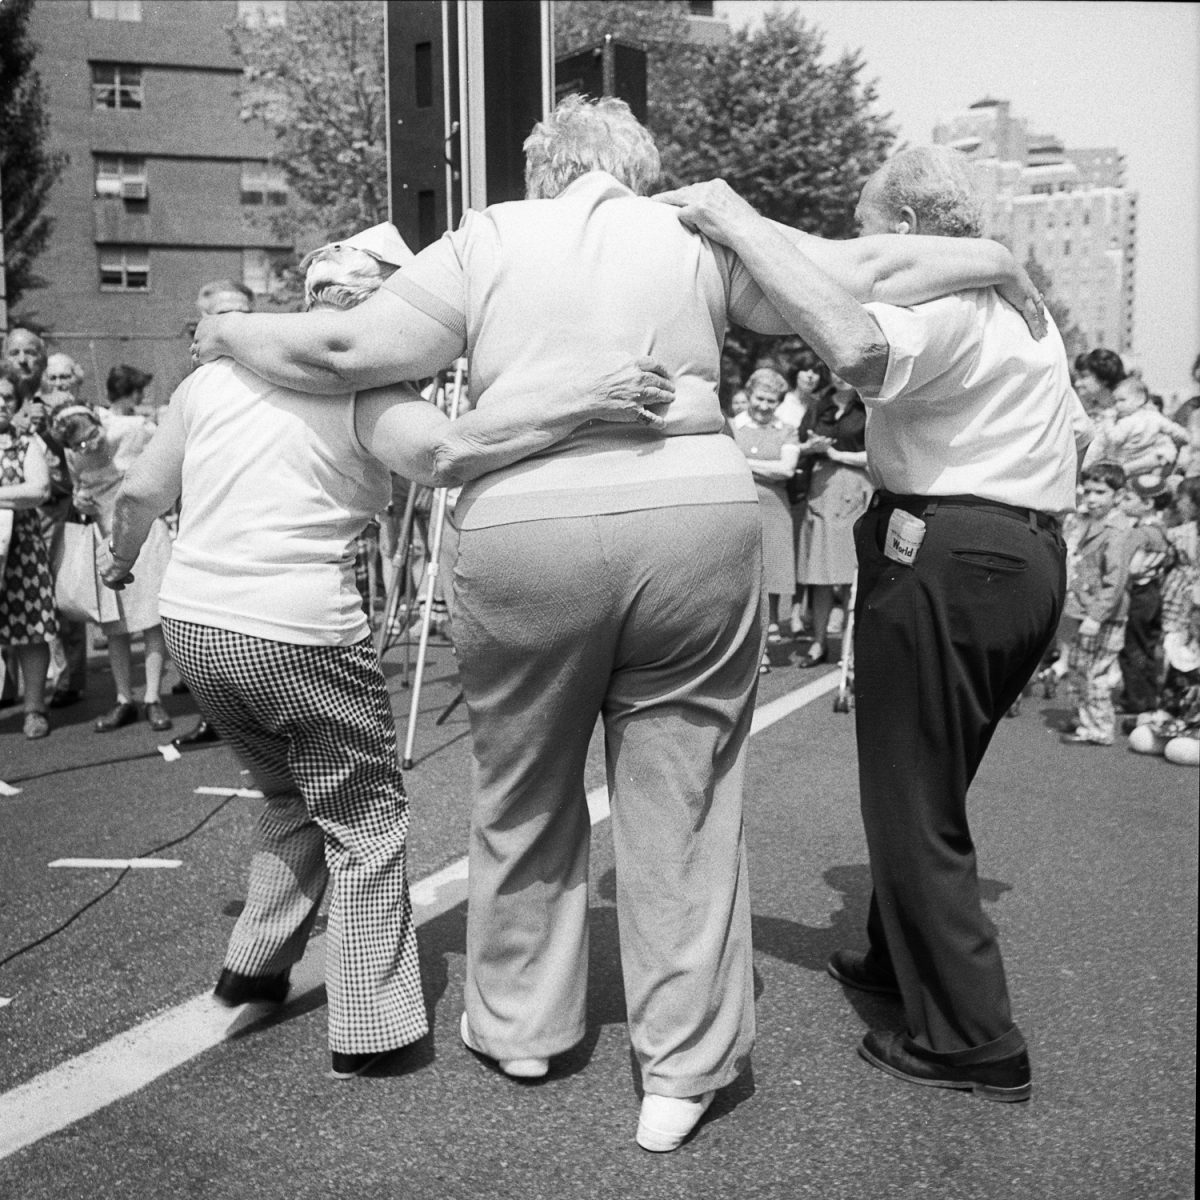 Dancing at The Lower East Side Street Festival - New York, New York - 1978